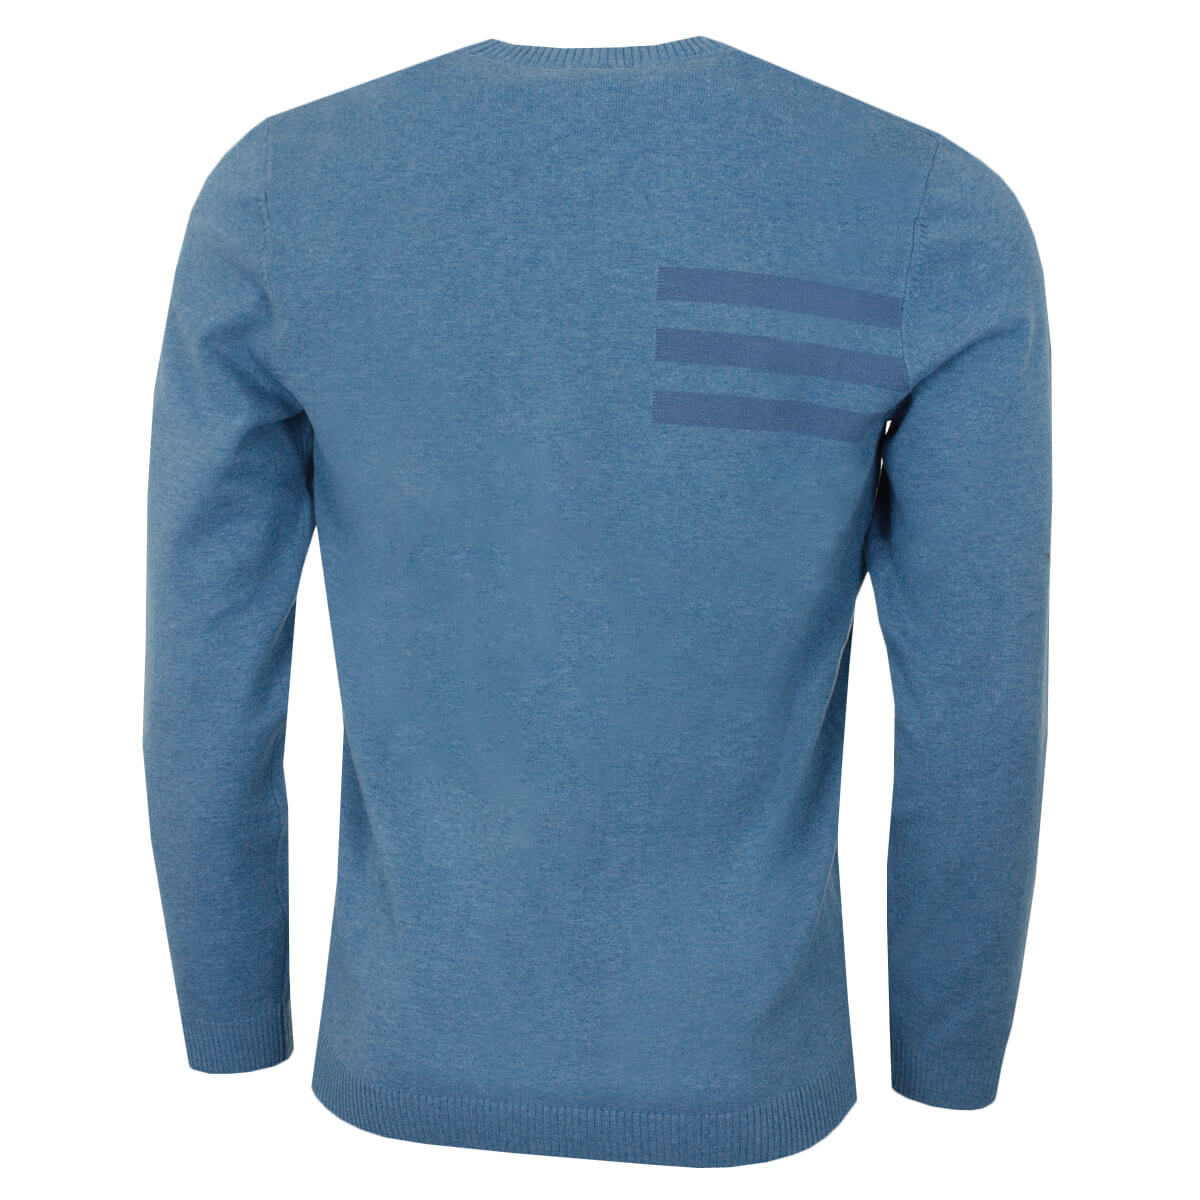 adidas-Golf-Mens-Blend-Cotton-Crew-Neck-Jumper-Pullover-Sweater-44-OFF-RRP thumbnail 11